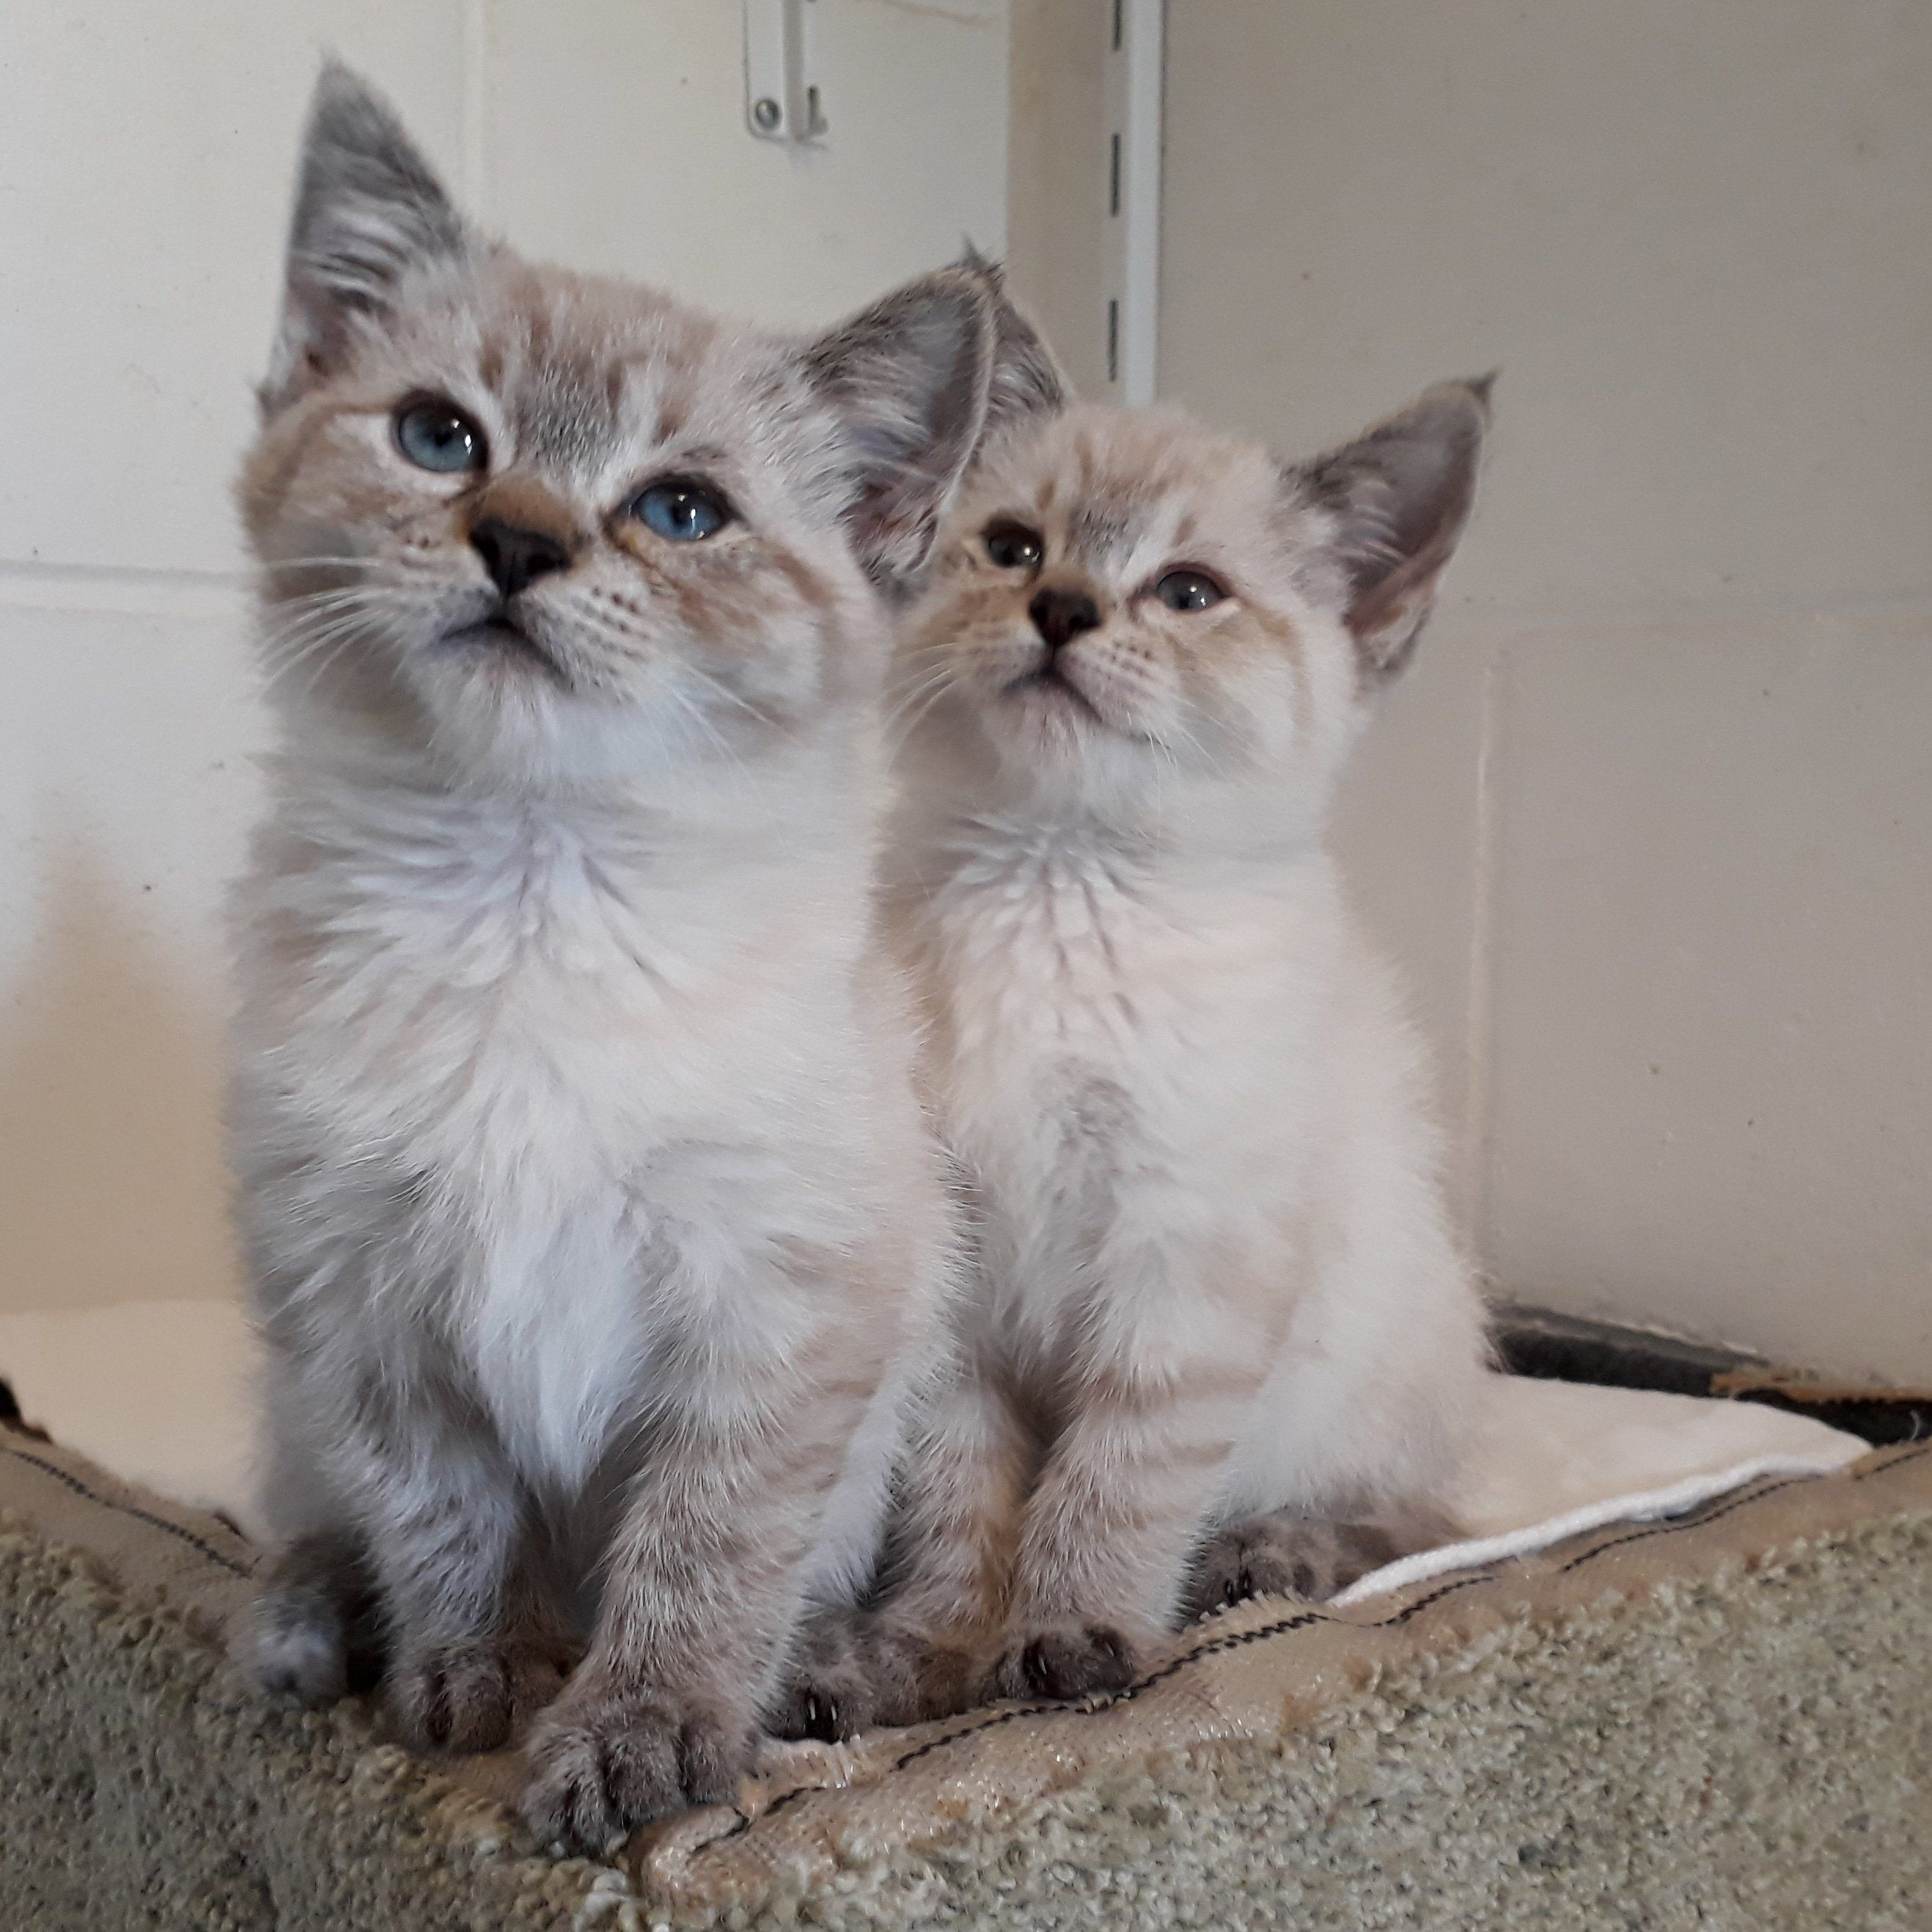 These Two Foster Kittens Were Abandoned When They Were Just A Few Weeks Old They Are 8 Weeks Old Now And Doing Great Foster Kittens Kittens Cutest Kittens